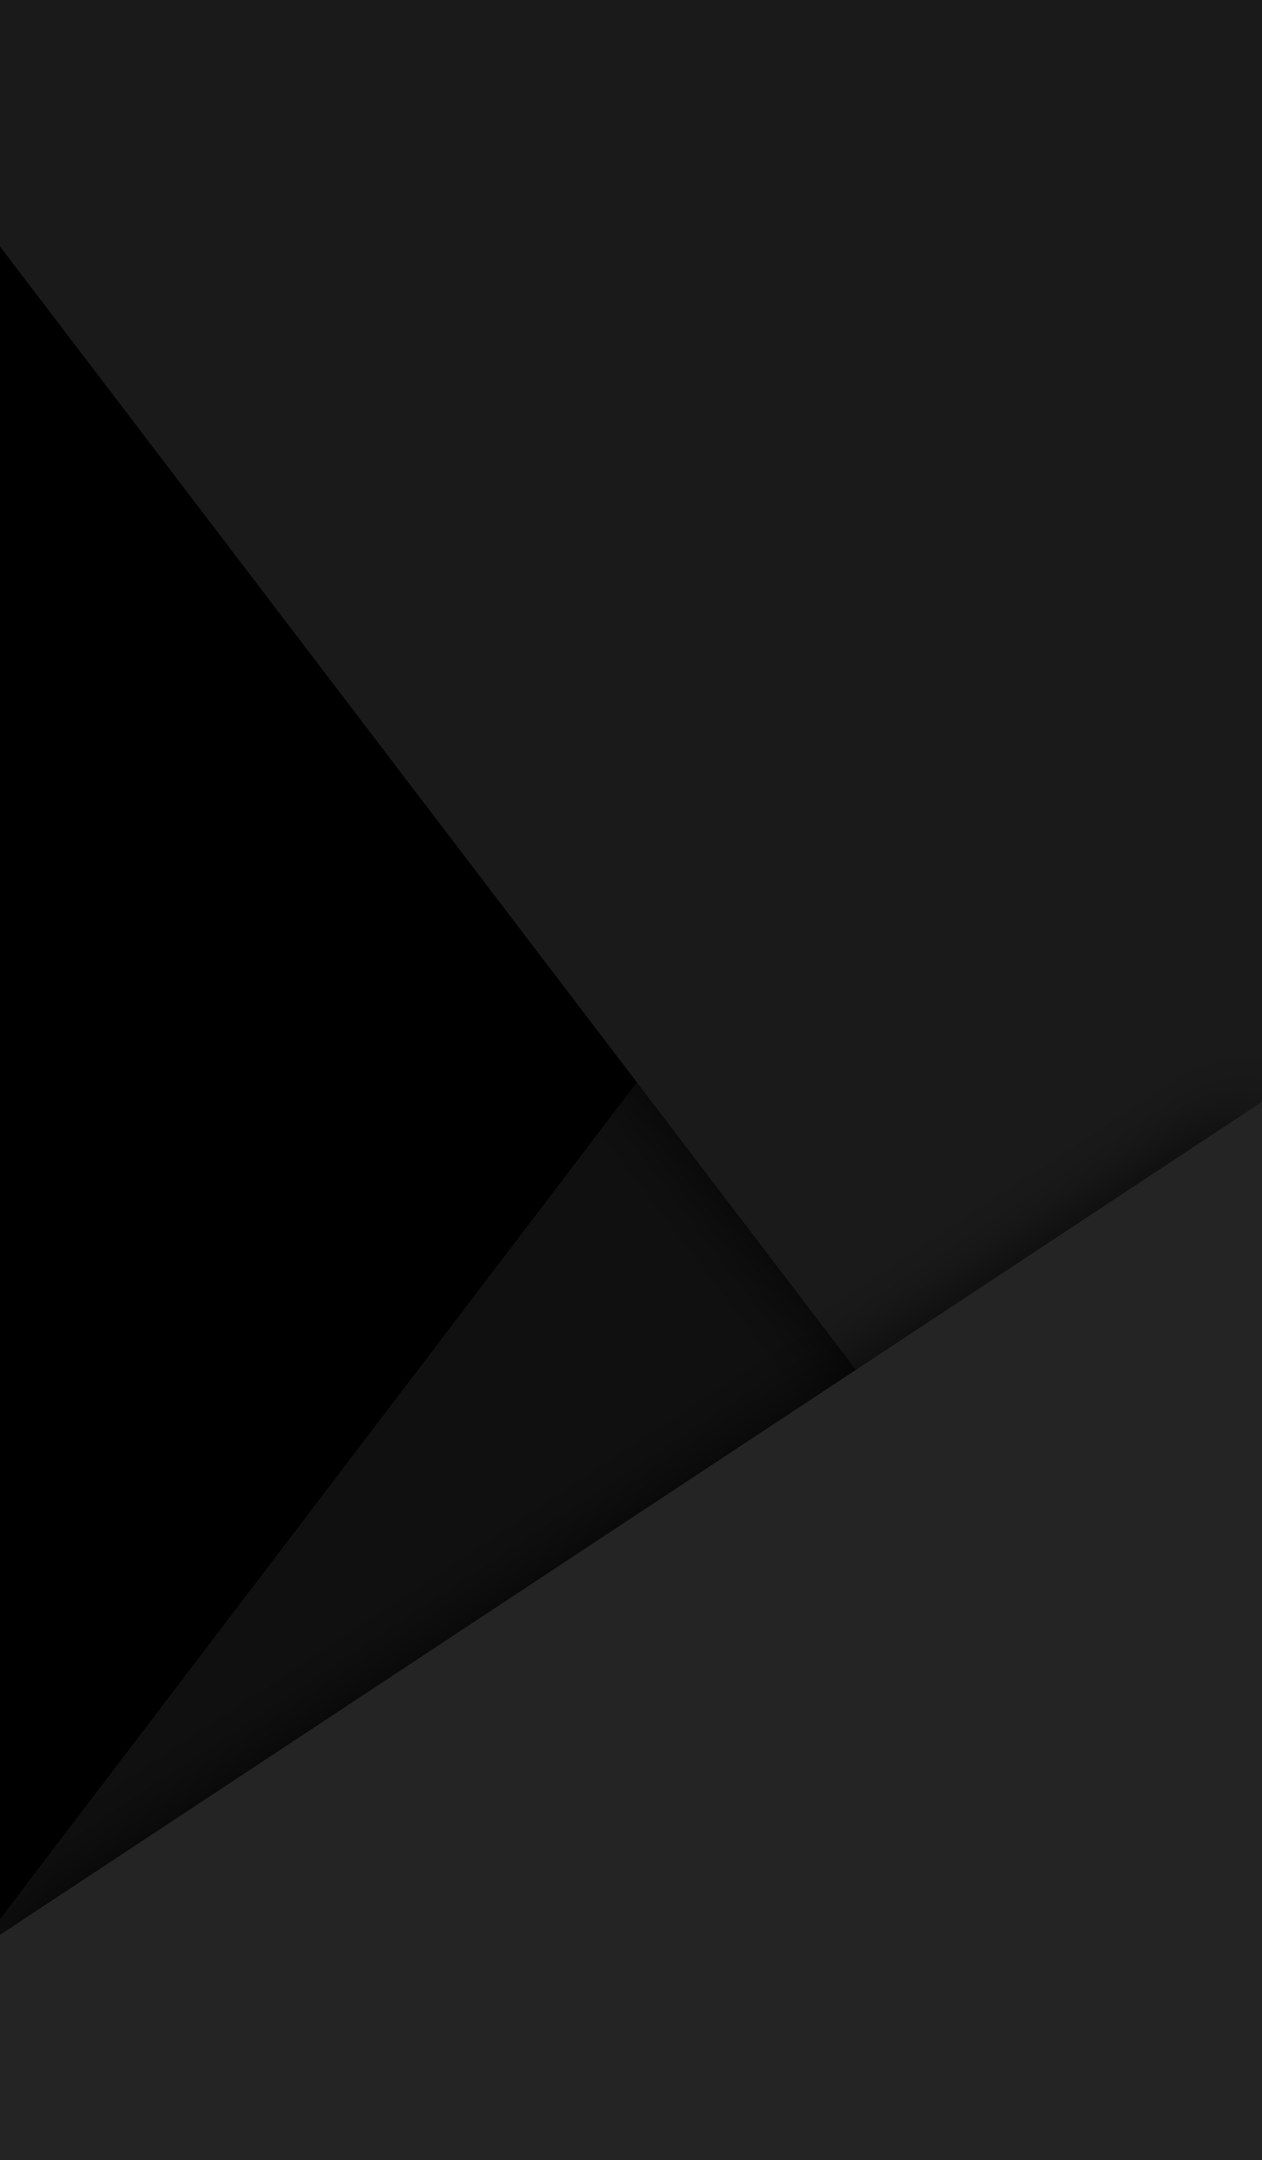 Black Amoled Material Design Wallpaper Black And White Pinterest